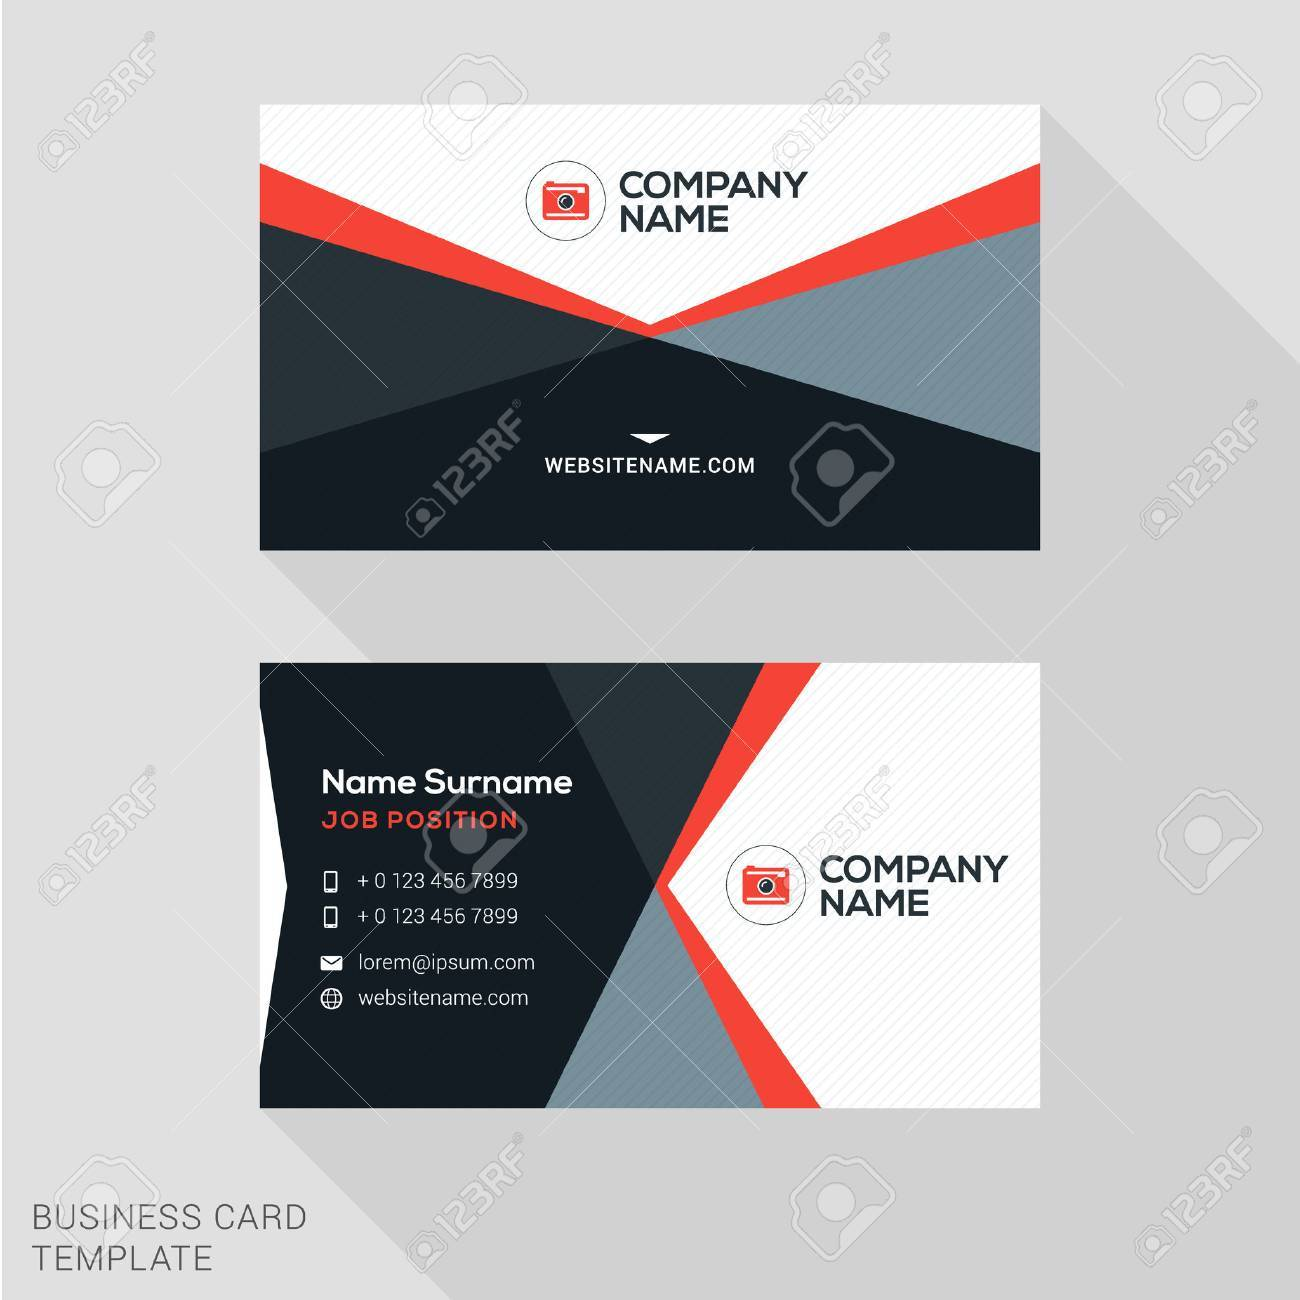 Creative business card vector template flat design vector creative business card vector template flat design vector illustration stationery design stock vector reheart Choice Image